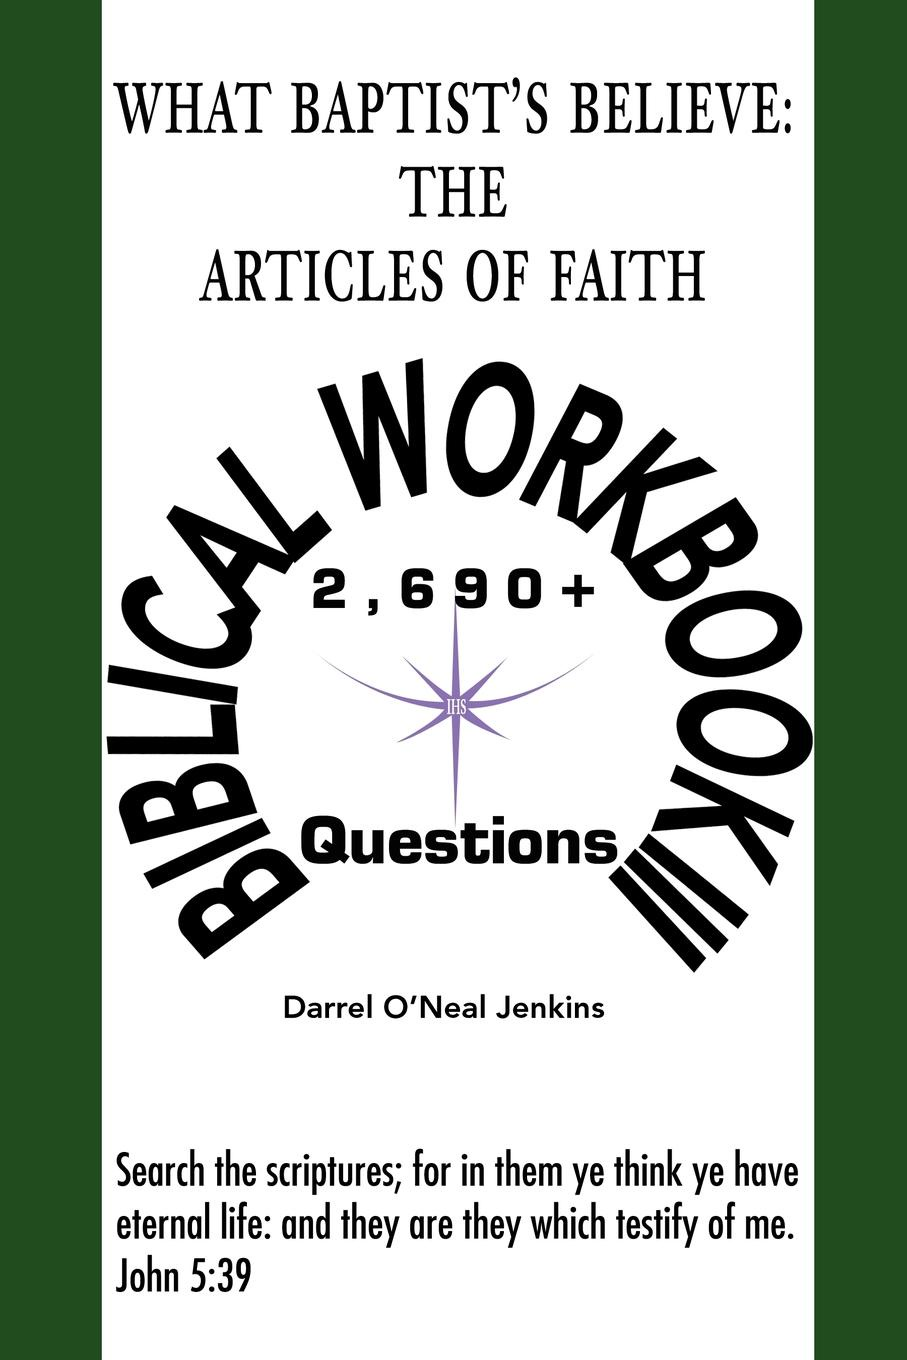 Darrel O'Neal Jenkins What Baptist's Believe. The Articles of Faith: Biblical Workbook III: 2690+ Questions thomas j jenkins the judges of faith